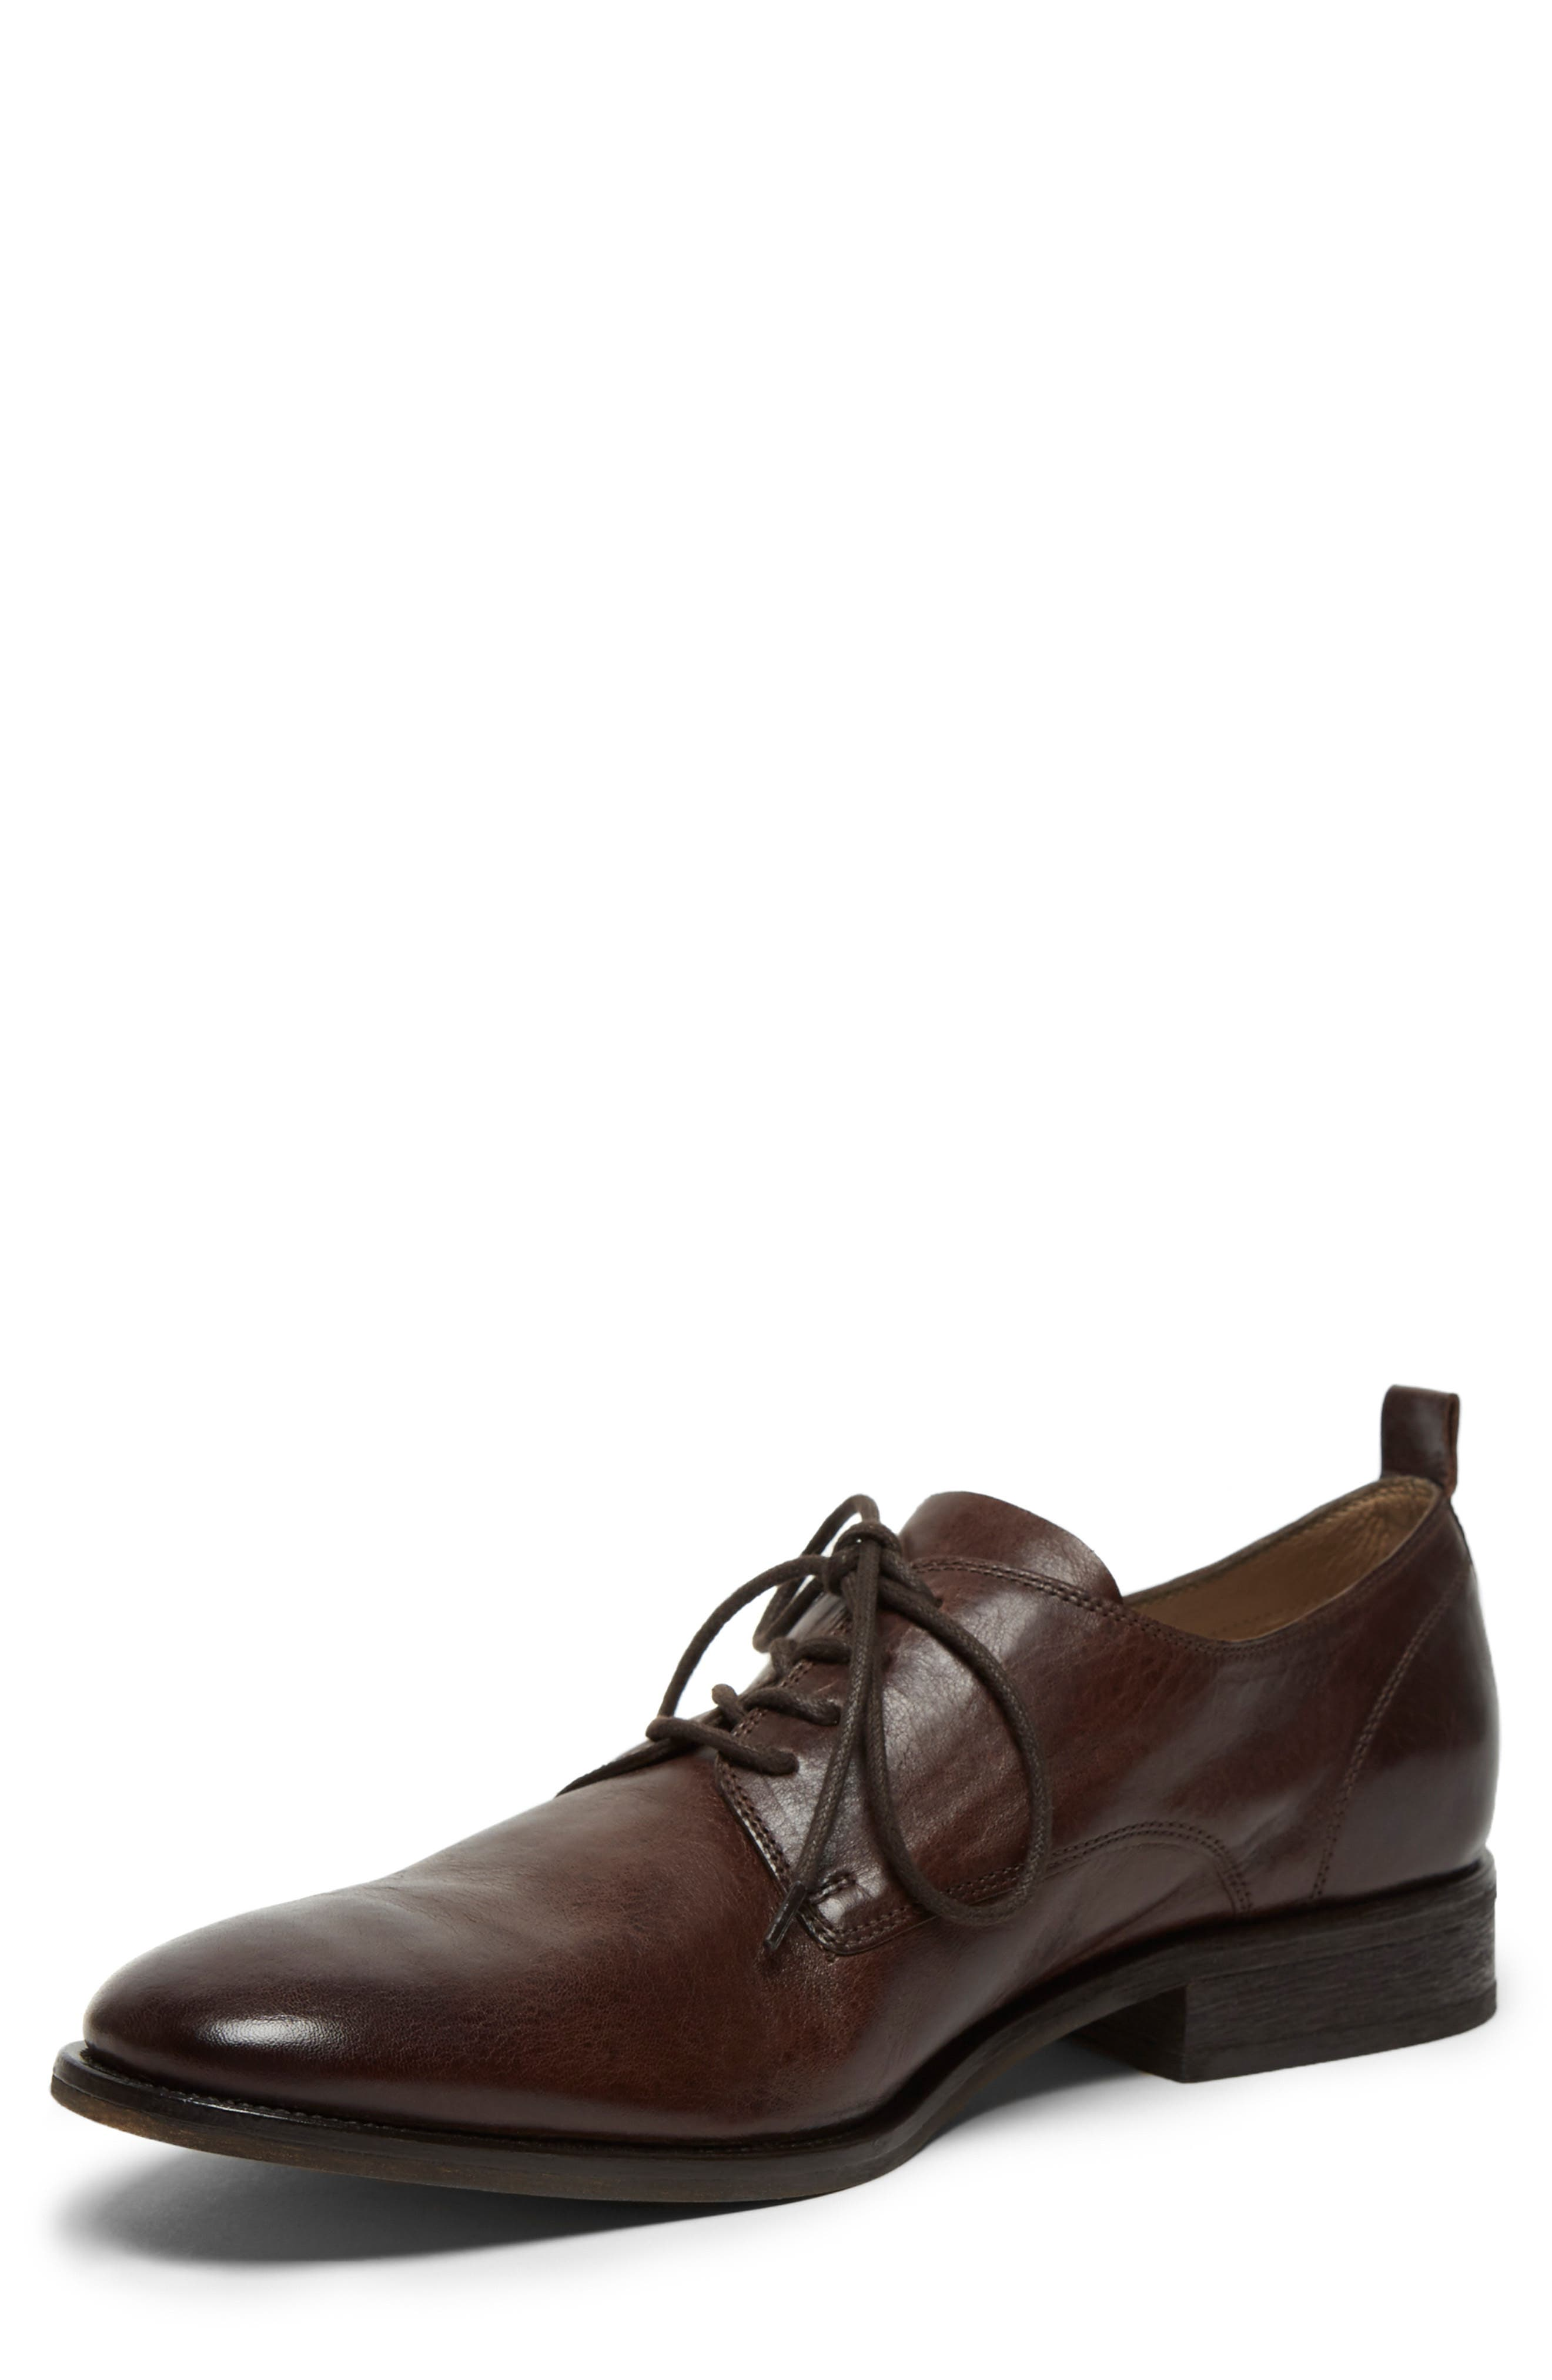 KENNETH COLE NEW YORK, Indio Plain Toe Derby, Alternate thumbnail 4, color, BROWN LEATHER